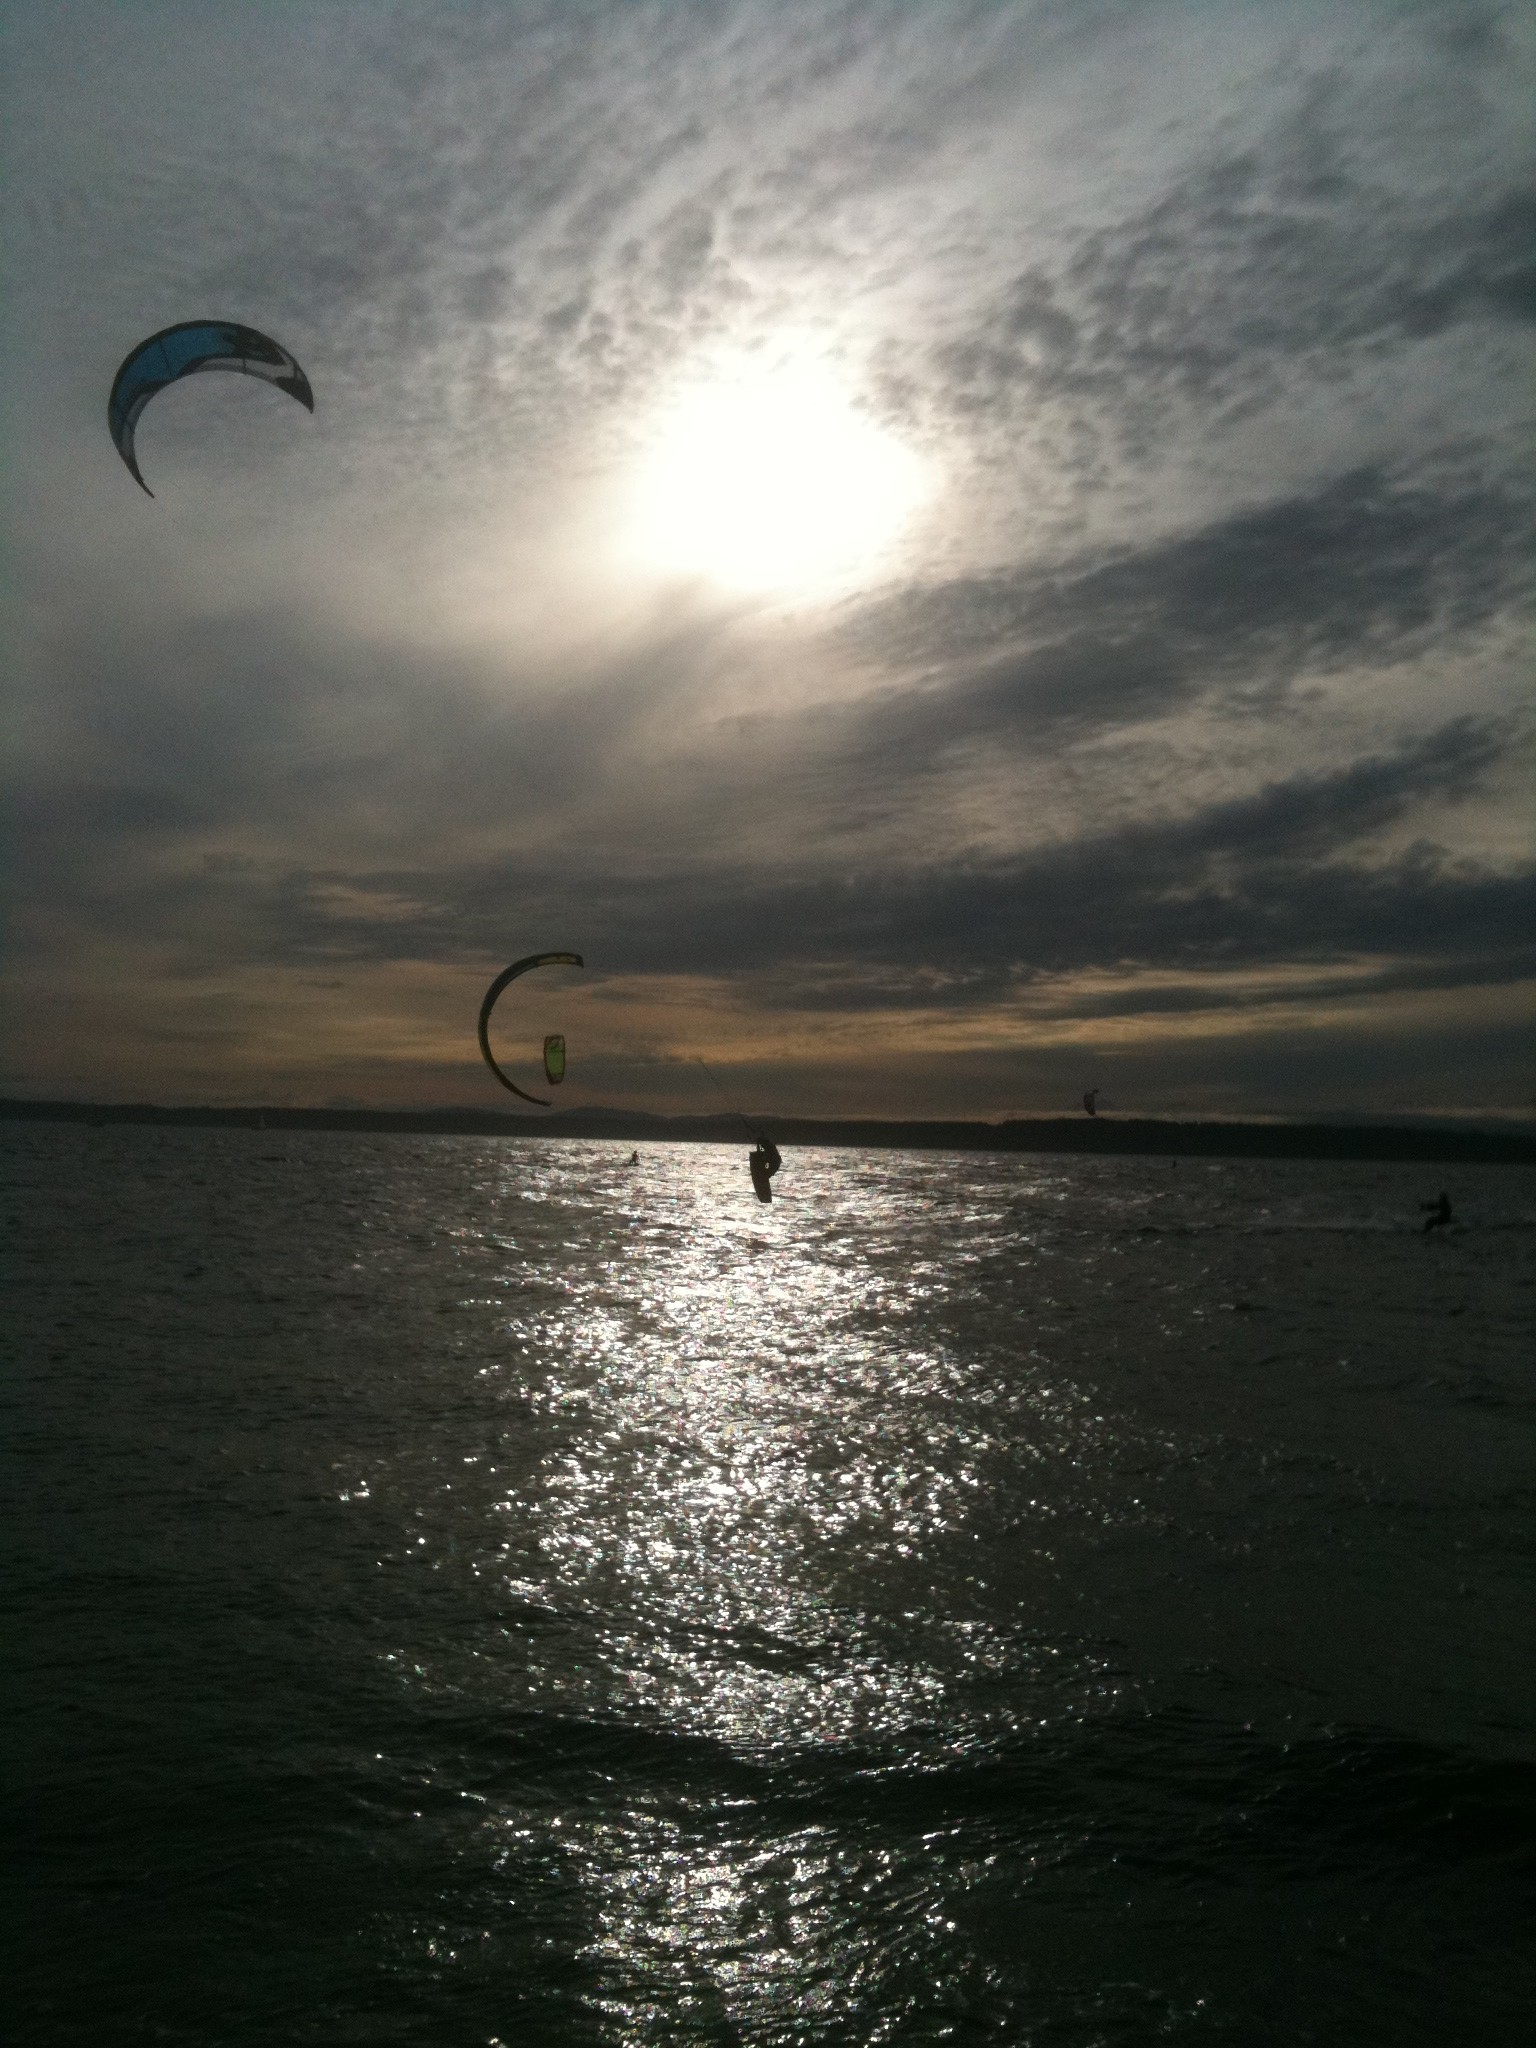 Kite Boarding is a sports technology centric product that takes nerves of steel to fly technologically advanced board and kite above water at higher altitudes, or while doing acrobatic feats like a 360, twisty or a massive big air jump